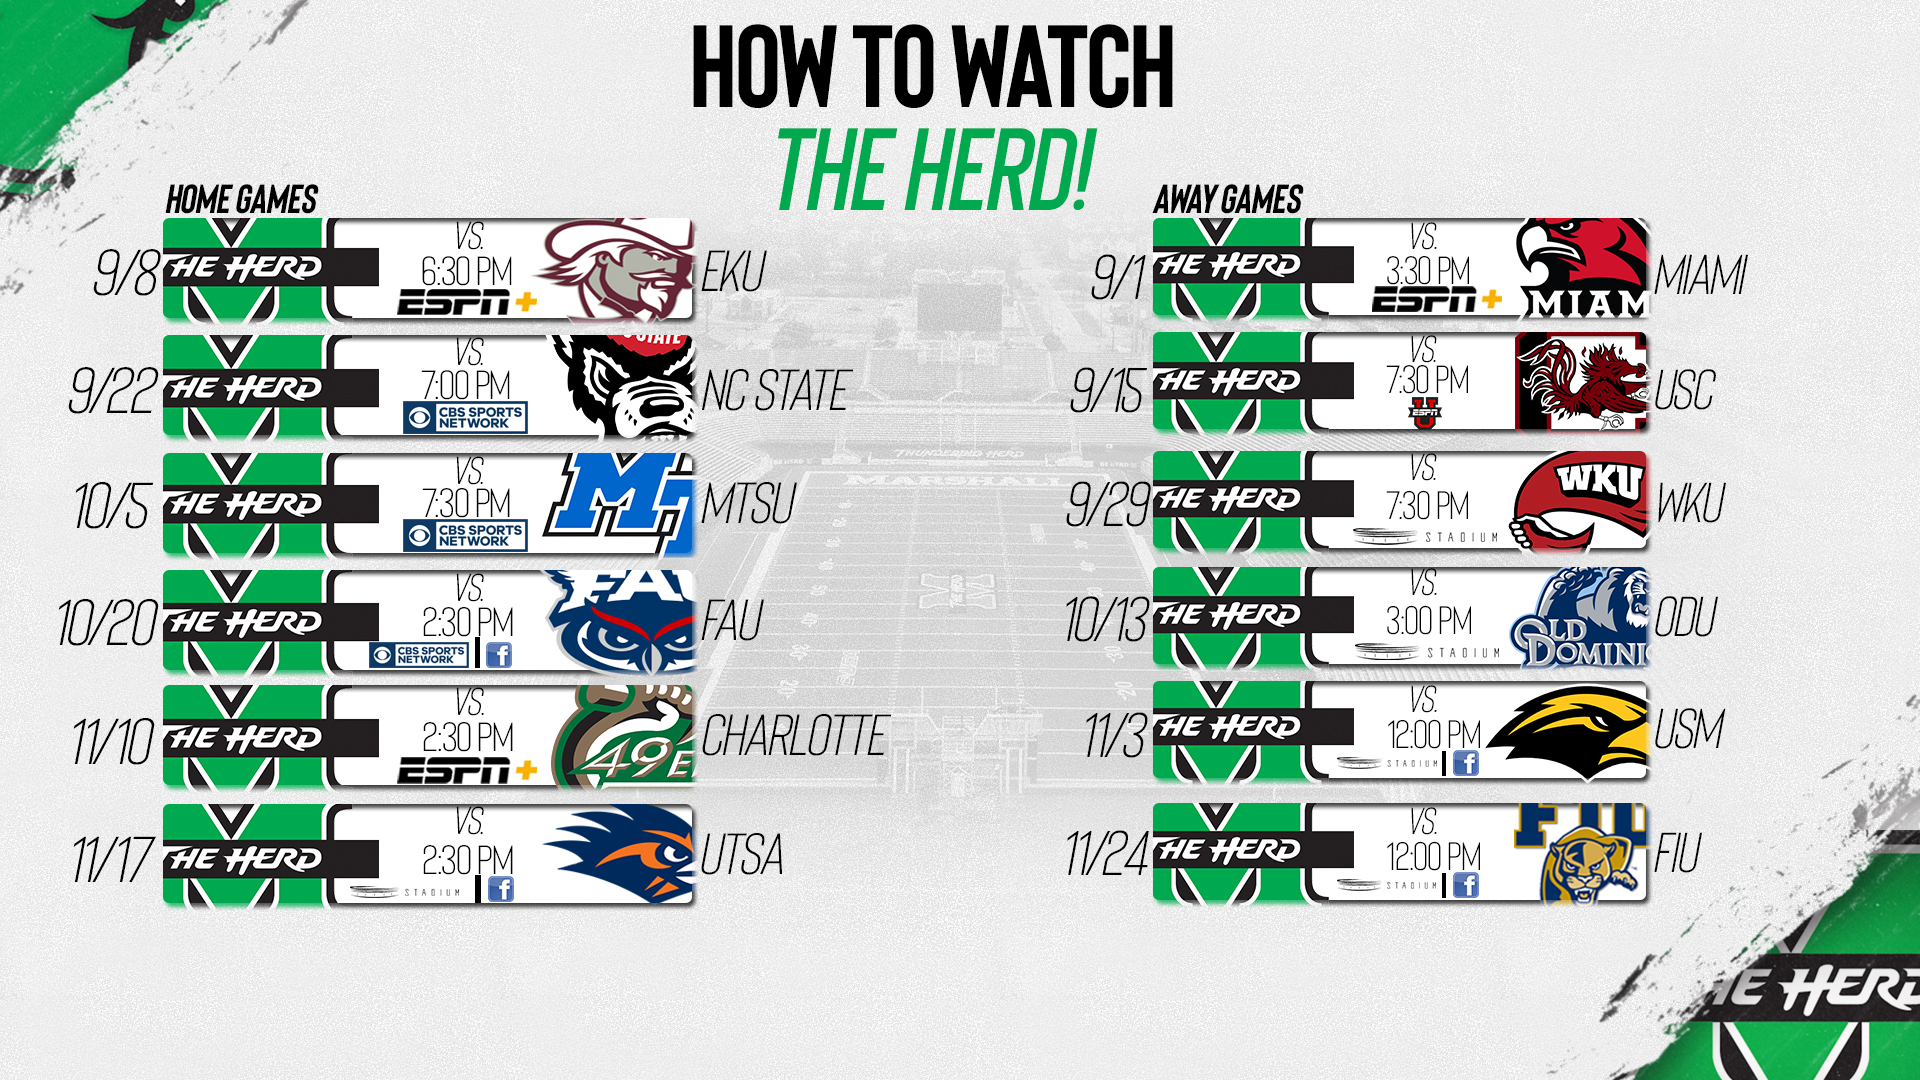 How To Watch The Herd On Espn This Season And More Marshall